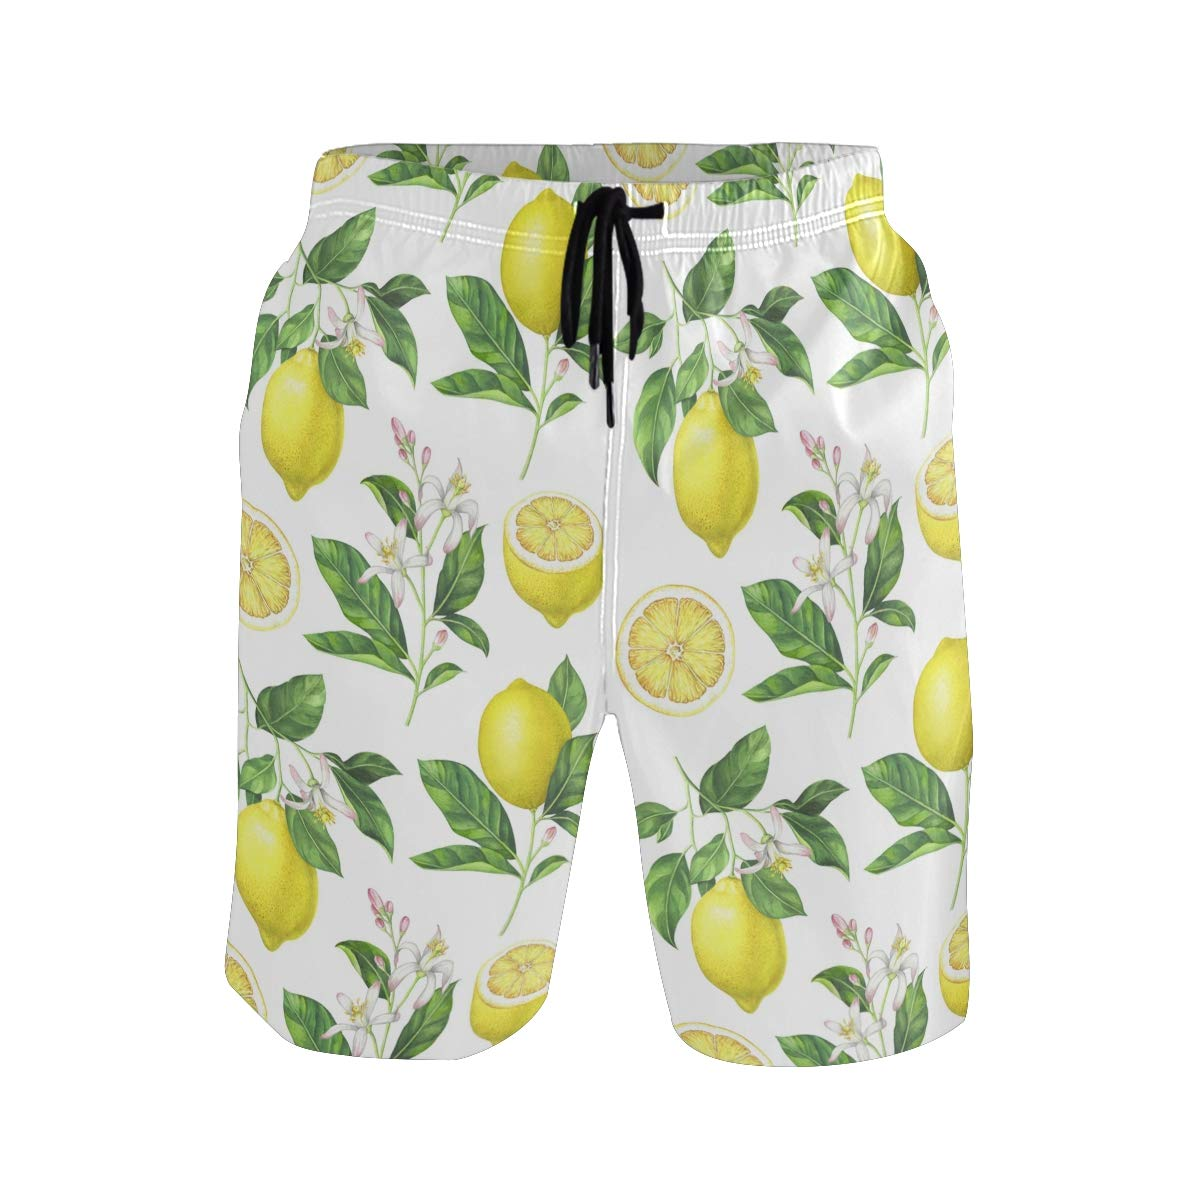 JERECY Mens Swim Trunks Watercolor Lemon Floral Pattern Quick Dry Board Shorts with Drawstring and Pockets